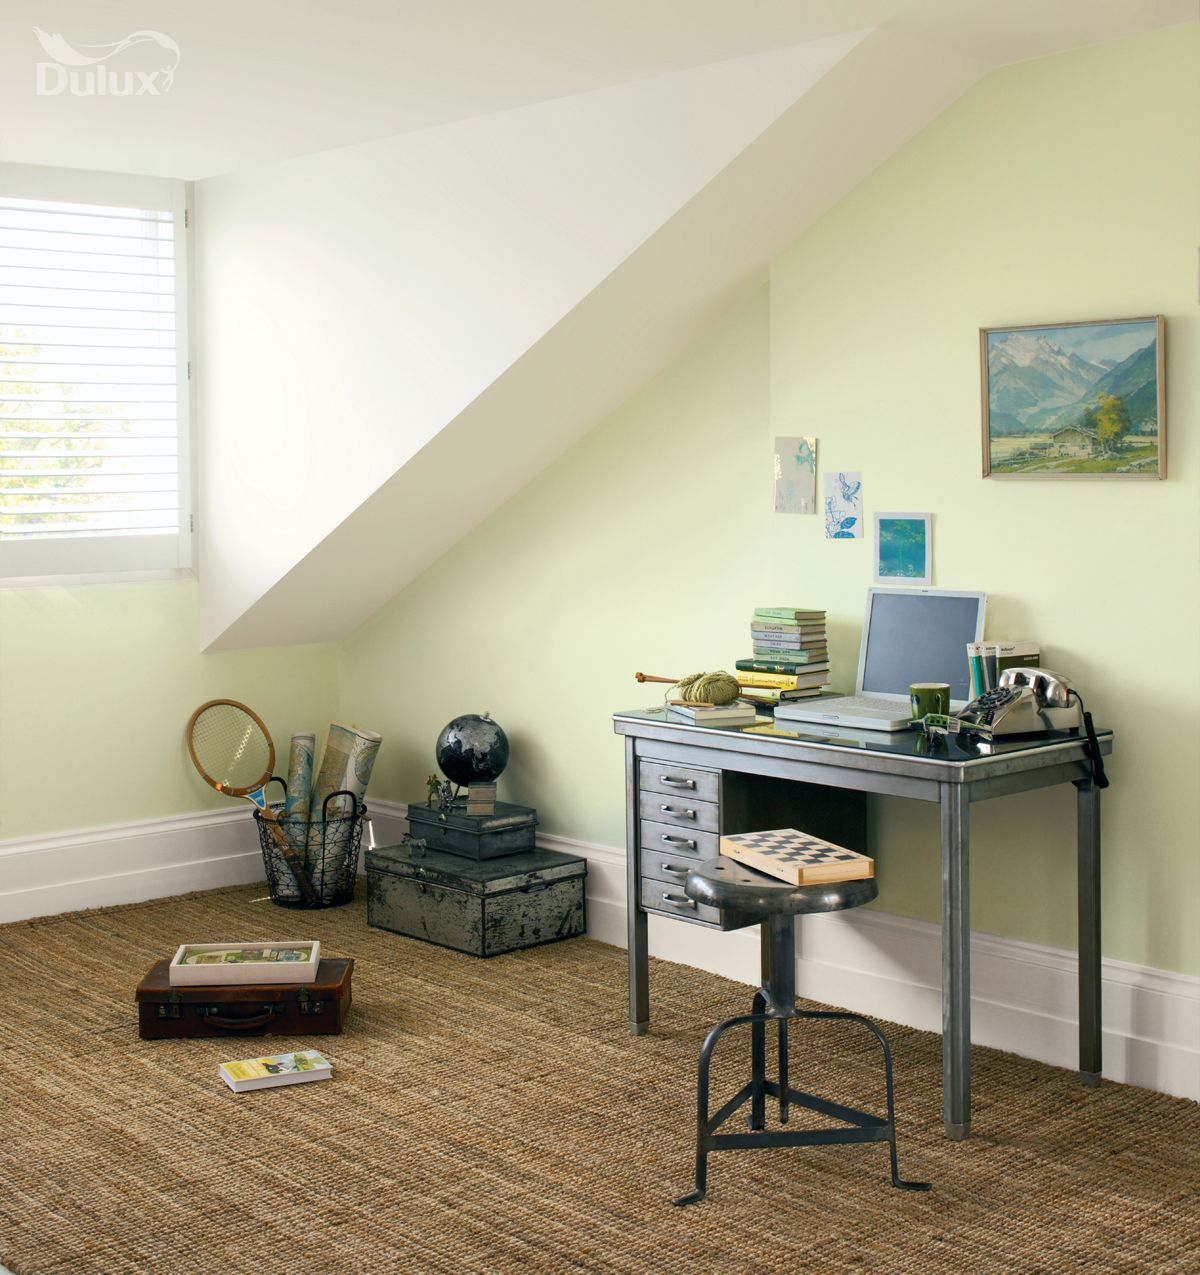 dulux light space tm helps open up small dark areas. Black Bedroom Furniture Sets. Home Design Ideas